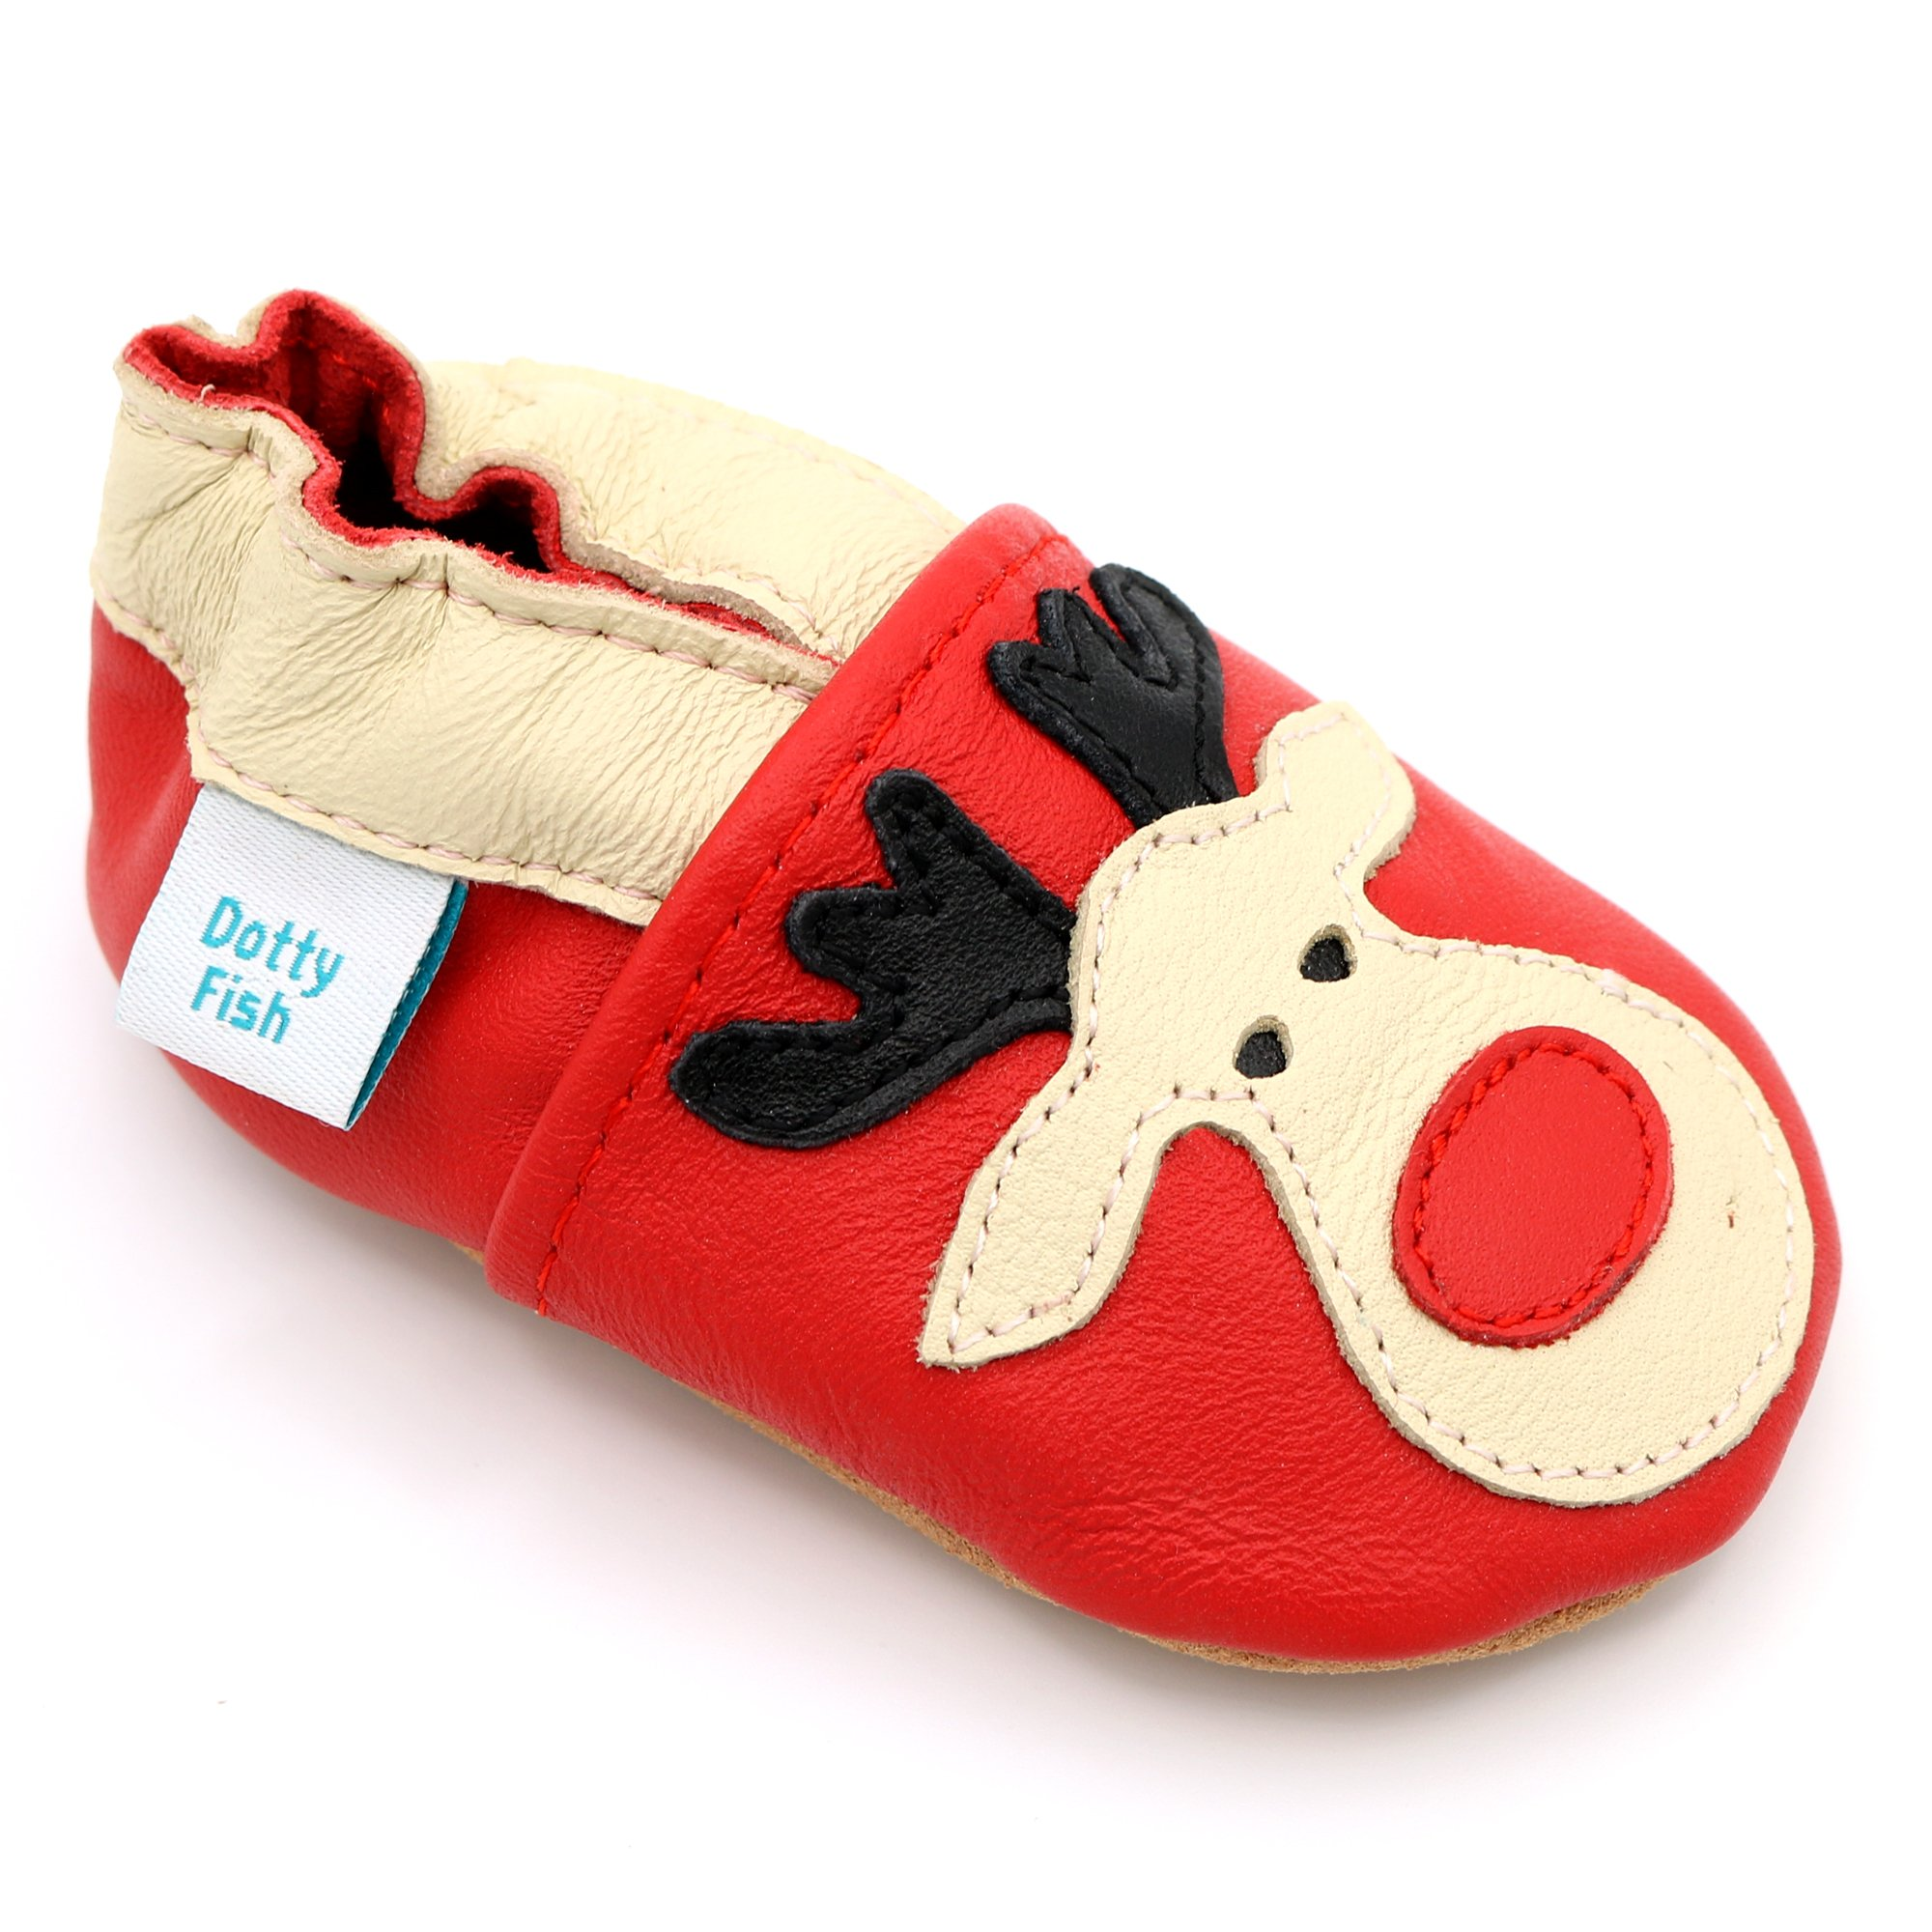 Toddler Shoes. Boys and Girls 0-6 Months to 3-4 Years Plain Colours Dotty Fish Soft Leather Baby Shoes Non-Slip Suede Soles